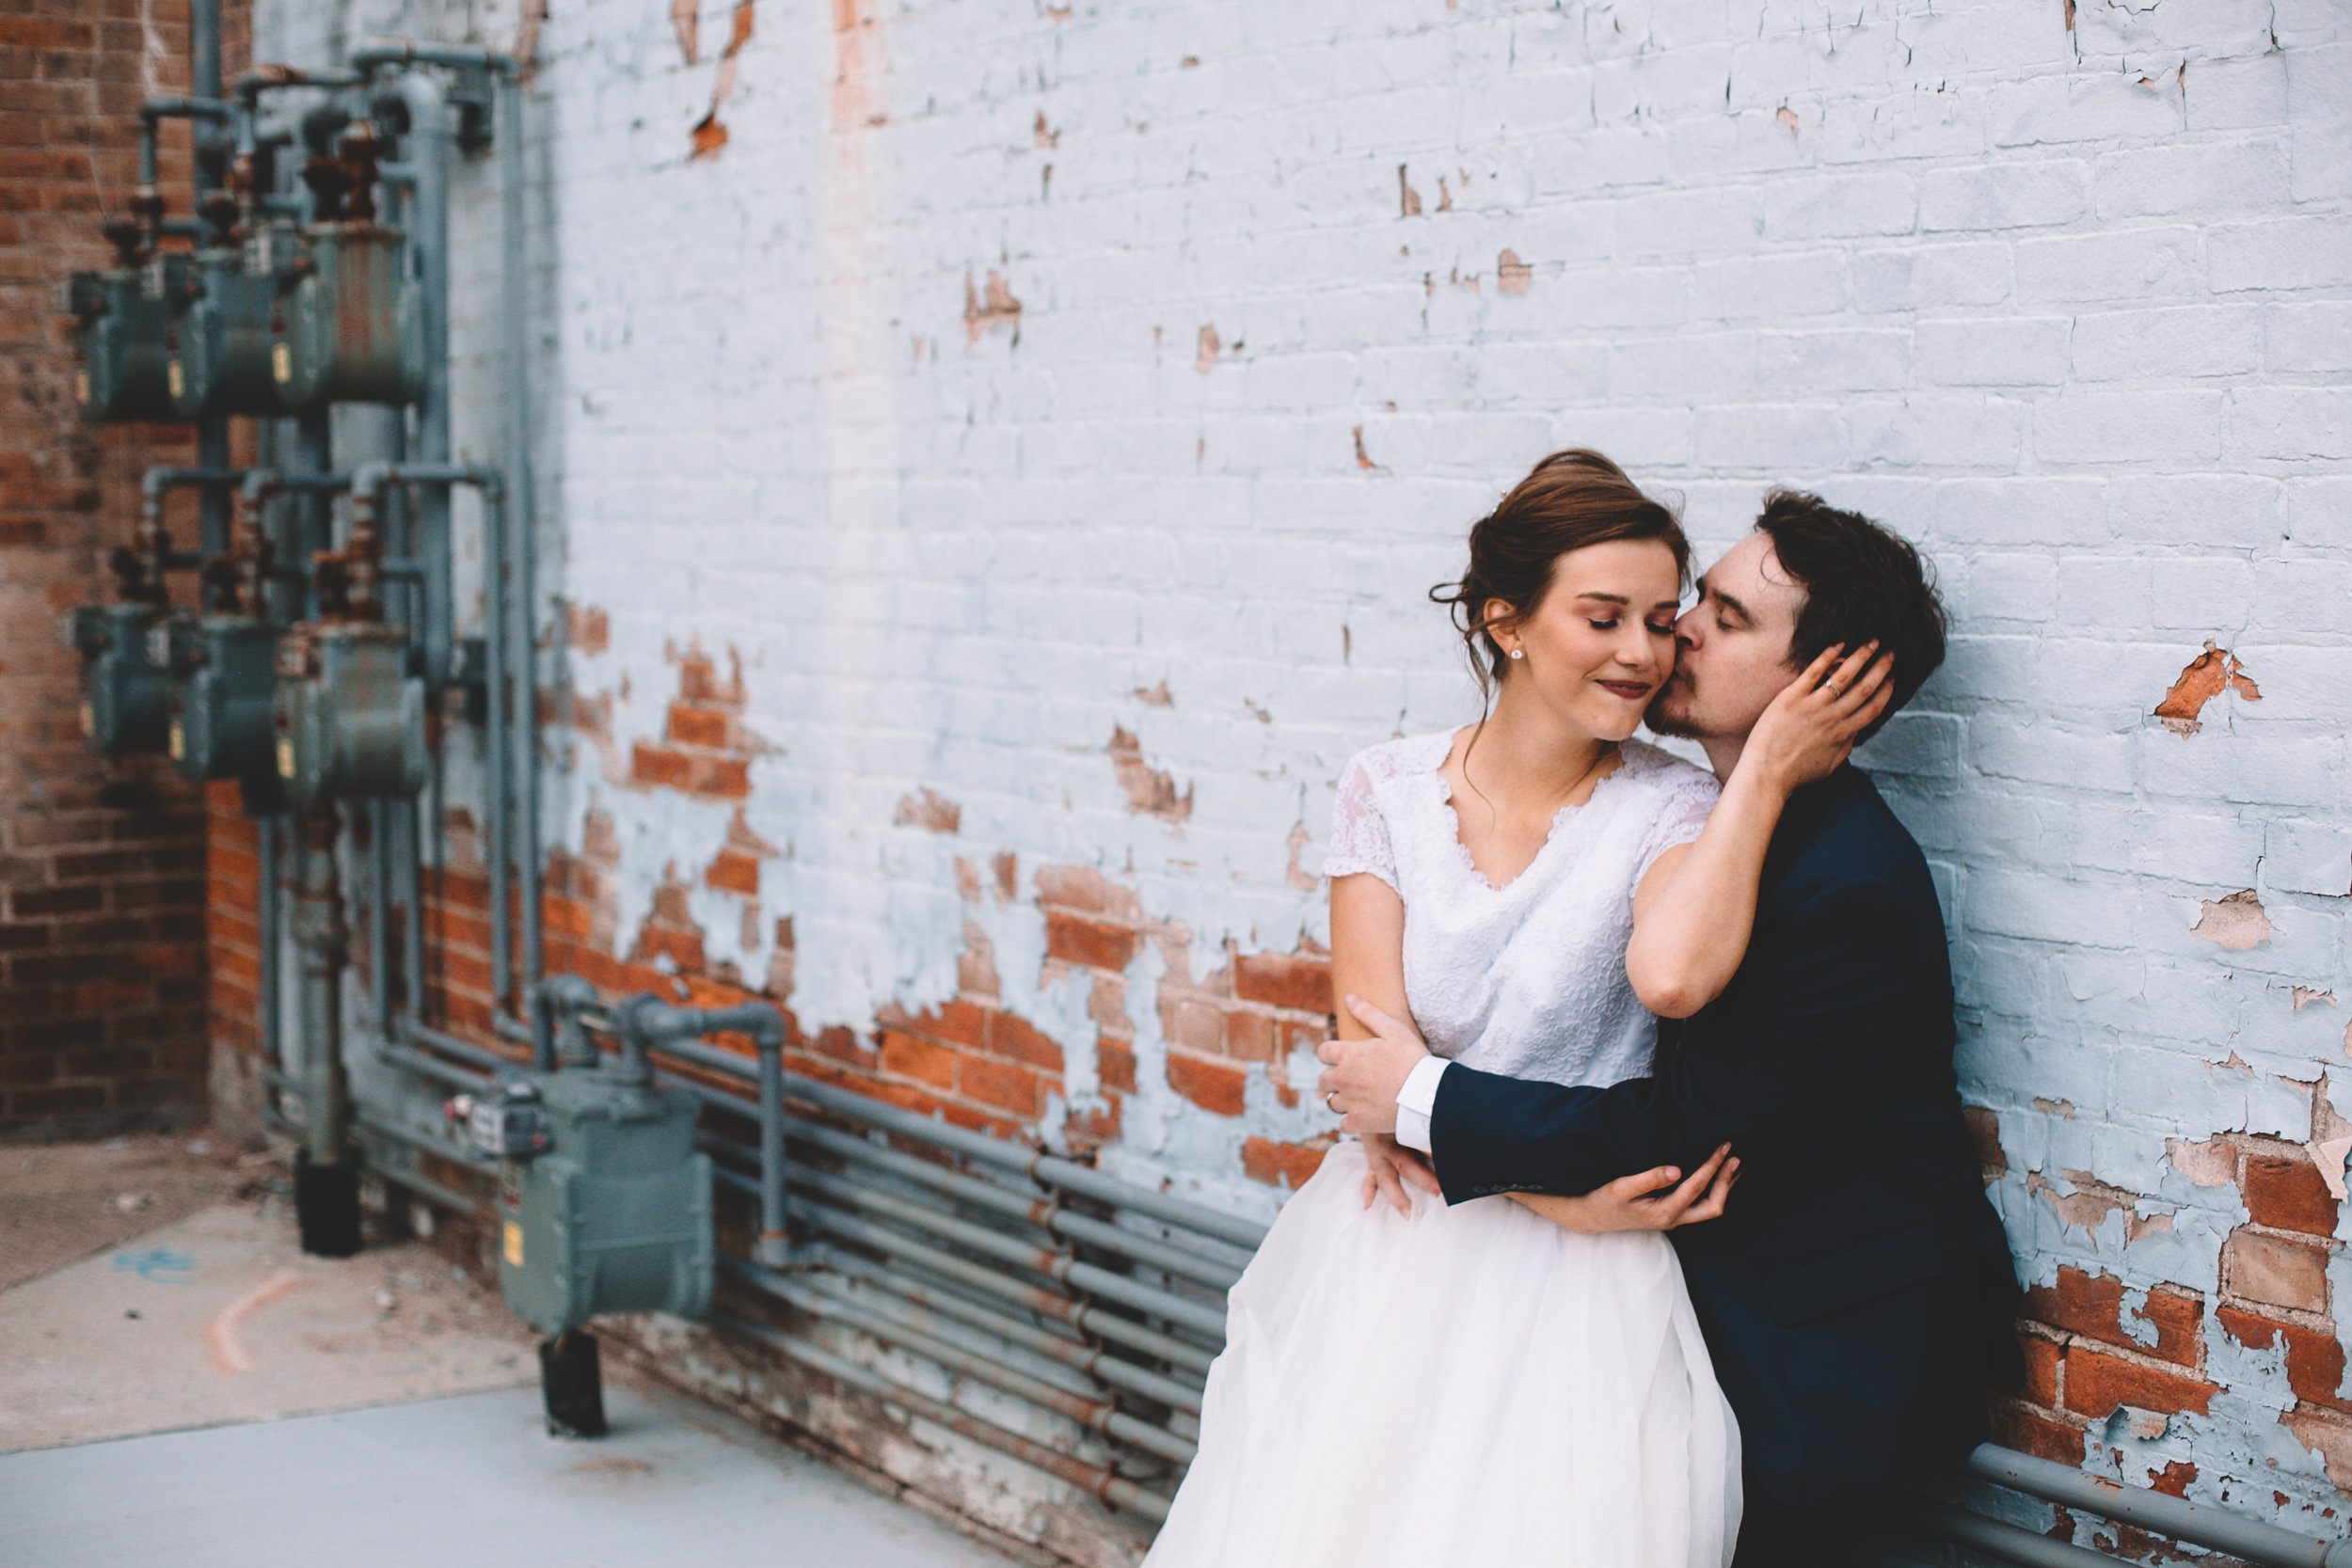 Urban Distressed Brick Wall Bridal Portraits Again We Say Rejoice Photography (4 of 18).jpg